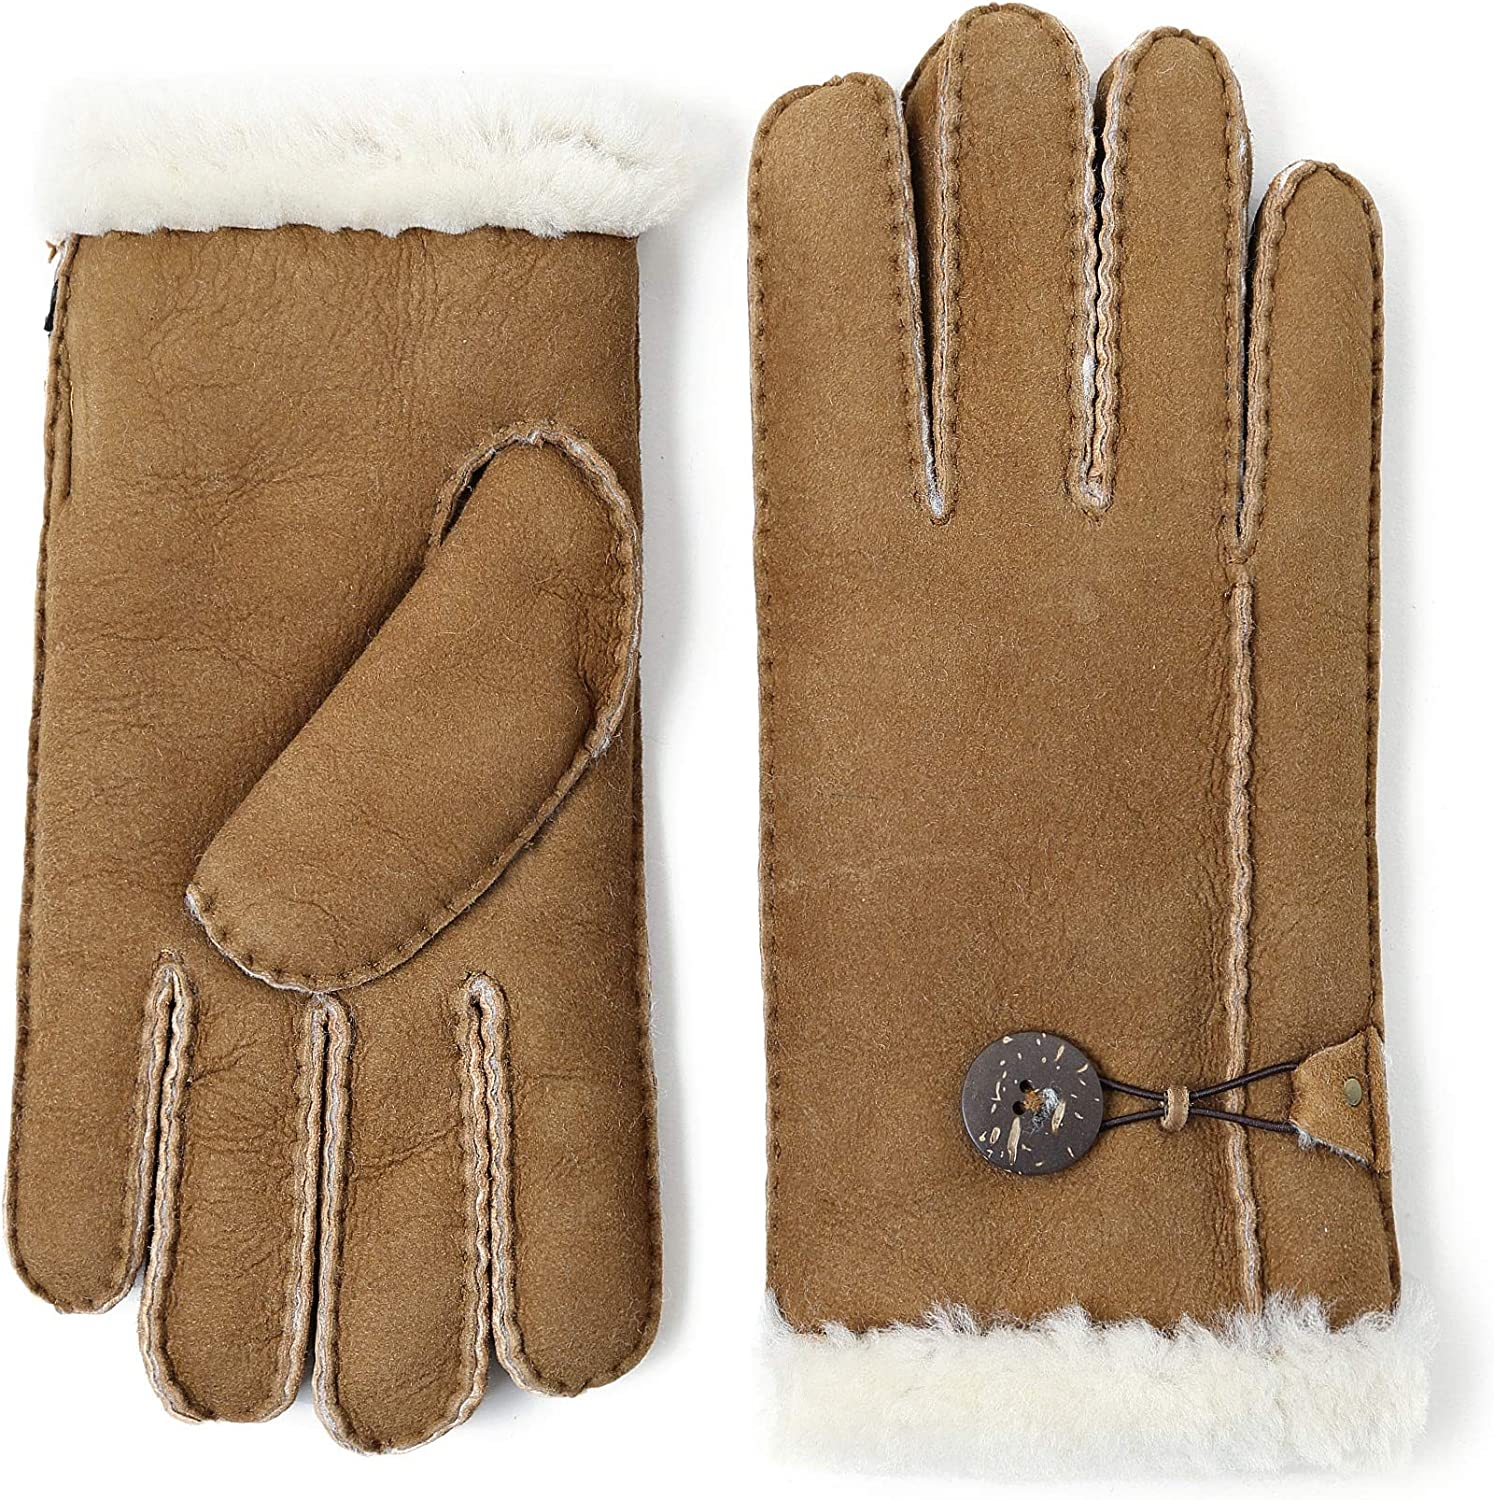 YISEVEN Women's Merino Rugged Lambskin Shearling Leather Gloves Button Decorated